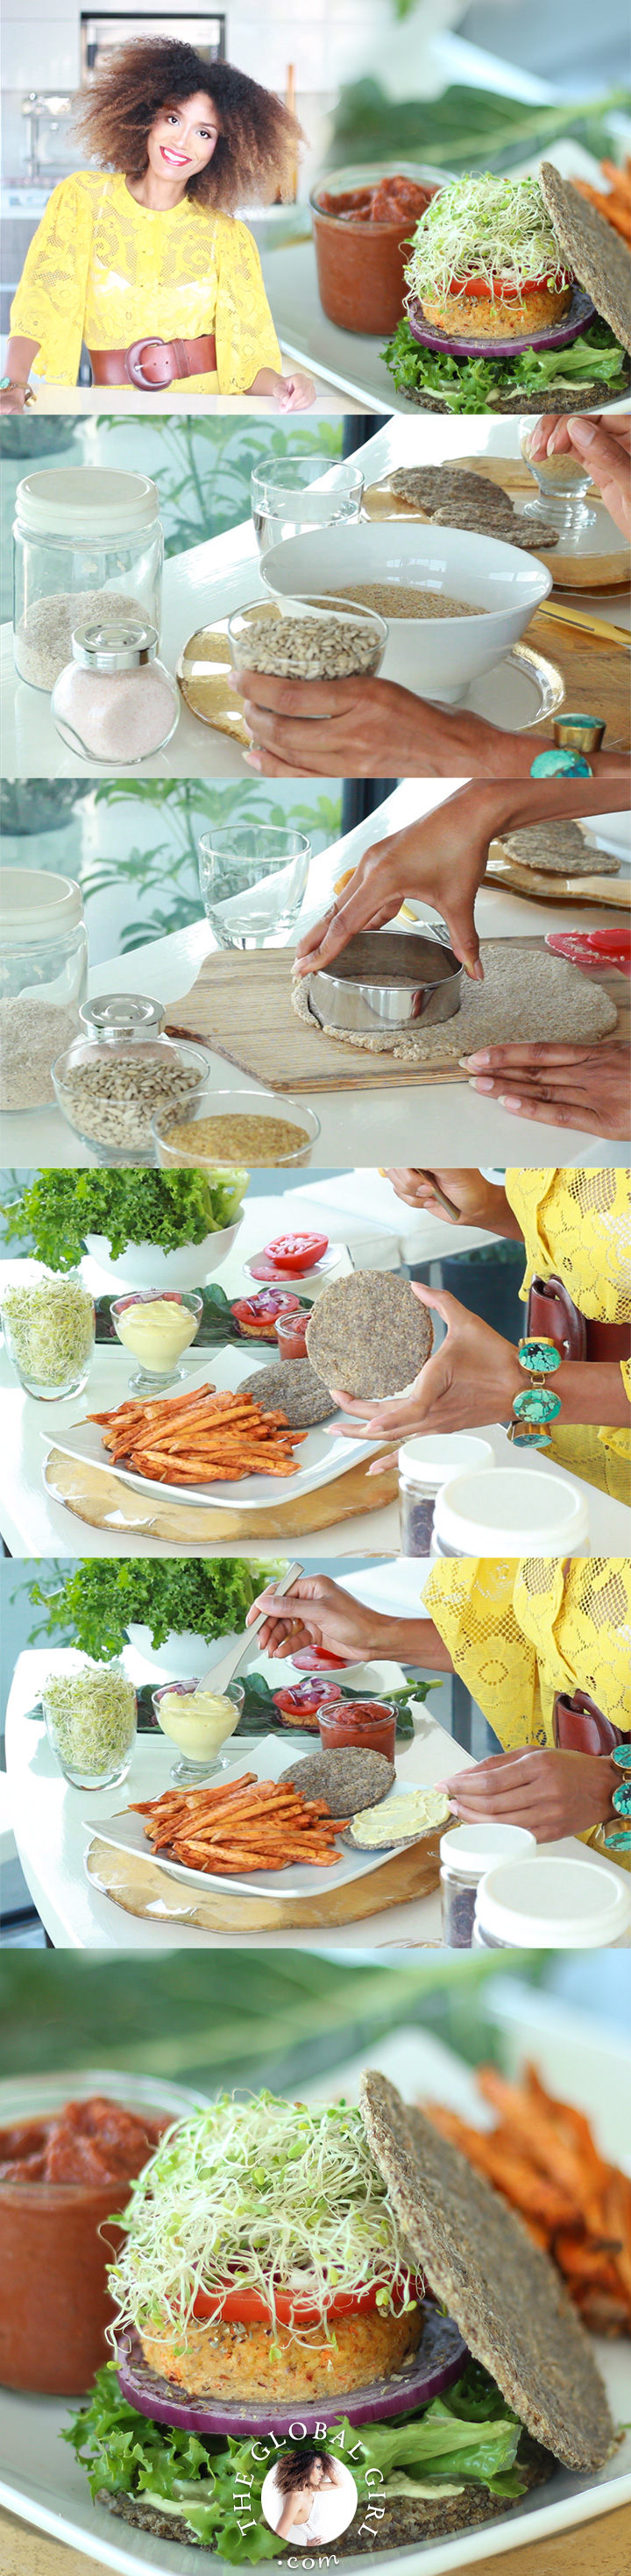 The Global Girl Raw Recipes: Ndoema shares her super simple nut-free, oil-free, grain-free and gluten-free raw vegan burger buns. They're the perfect balance of light and hearty and crunchy but soft. Delish slathered with mayo (the beauty-boosting kind: https://theglobalgirl.com/raw-dressings/) and combined with her no-bake burger patties and no-fry French fries, with a serving fat-free raw vegan ketchup on the side.